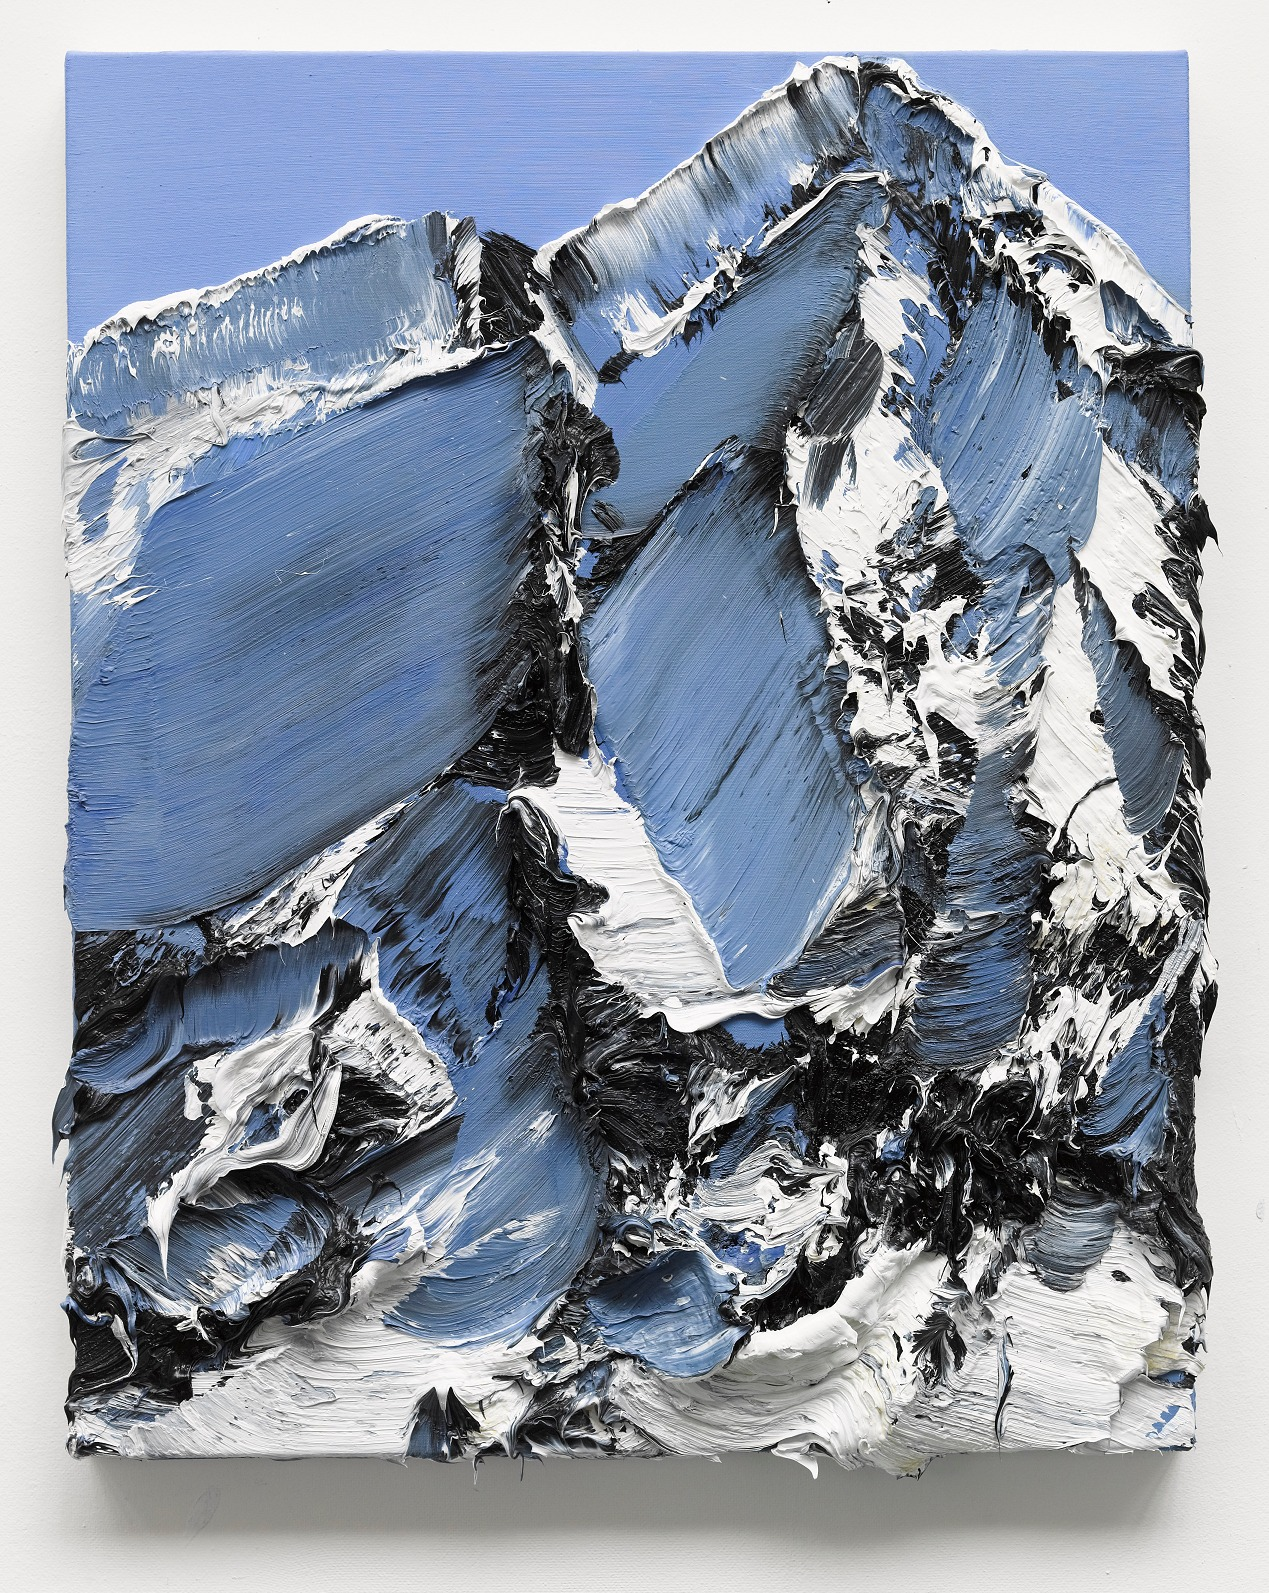 Conrad Jon Godly's Mountain Paintings Drip from the Canvas | Colossal